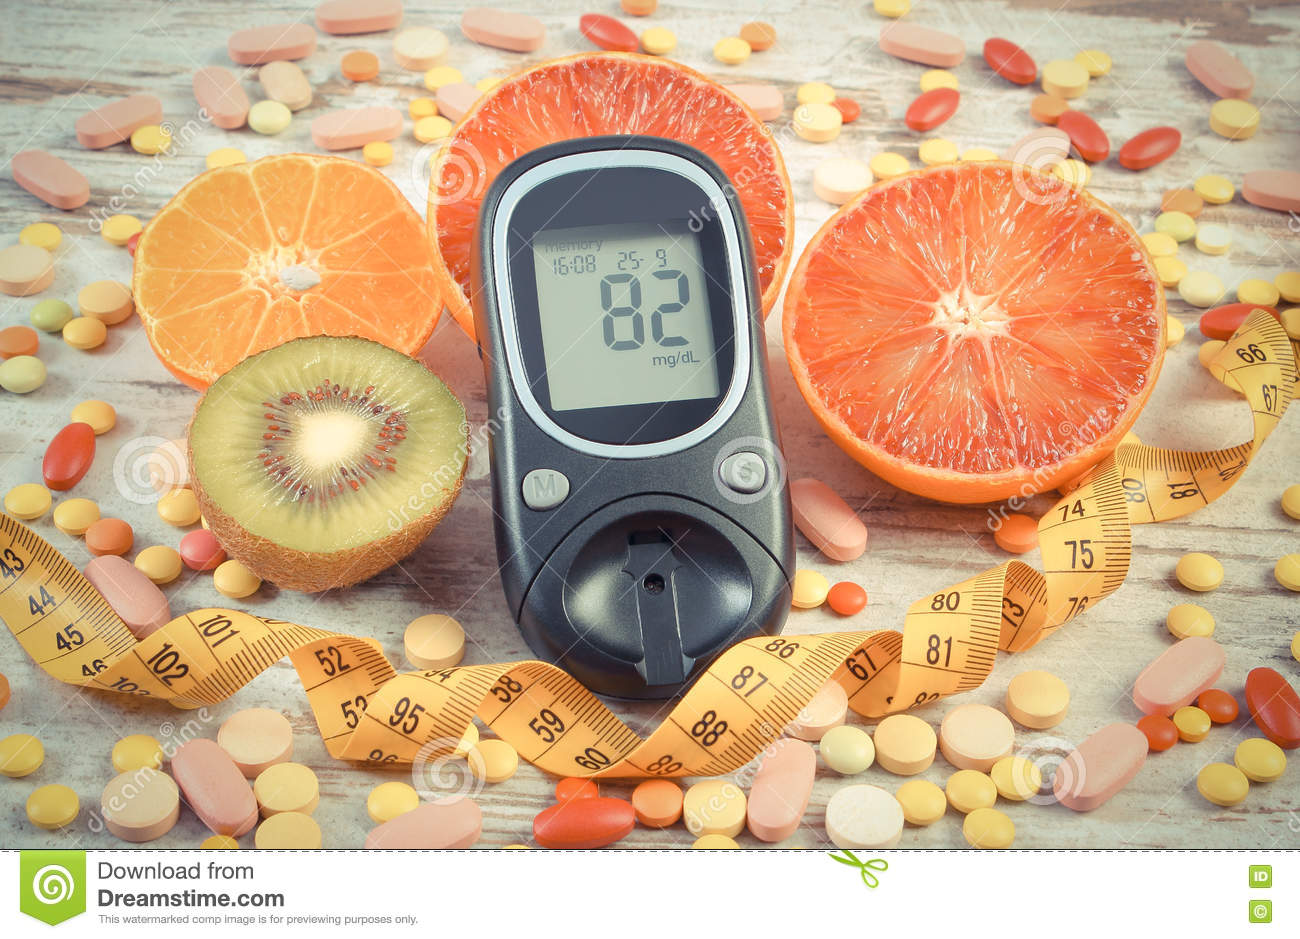 Vintage photo, Glucometer with result, centimeter, fruits and medical pills, diabetes, slimming, healthy lifestyle and nutrition